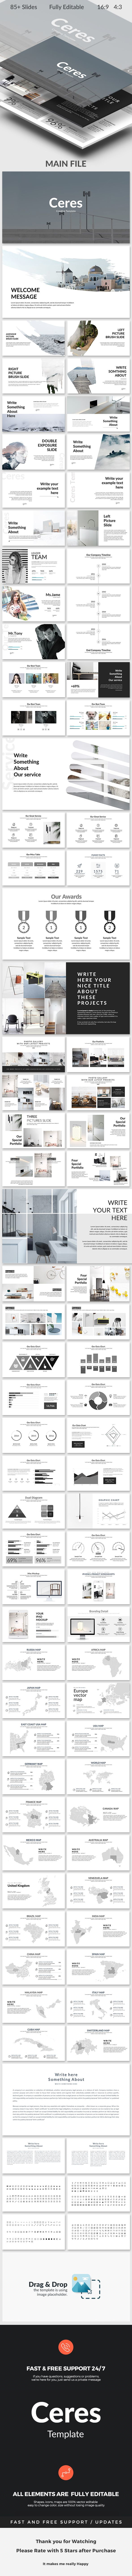 Ceres - Creative Keynote Template - Creative Keynote Templates